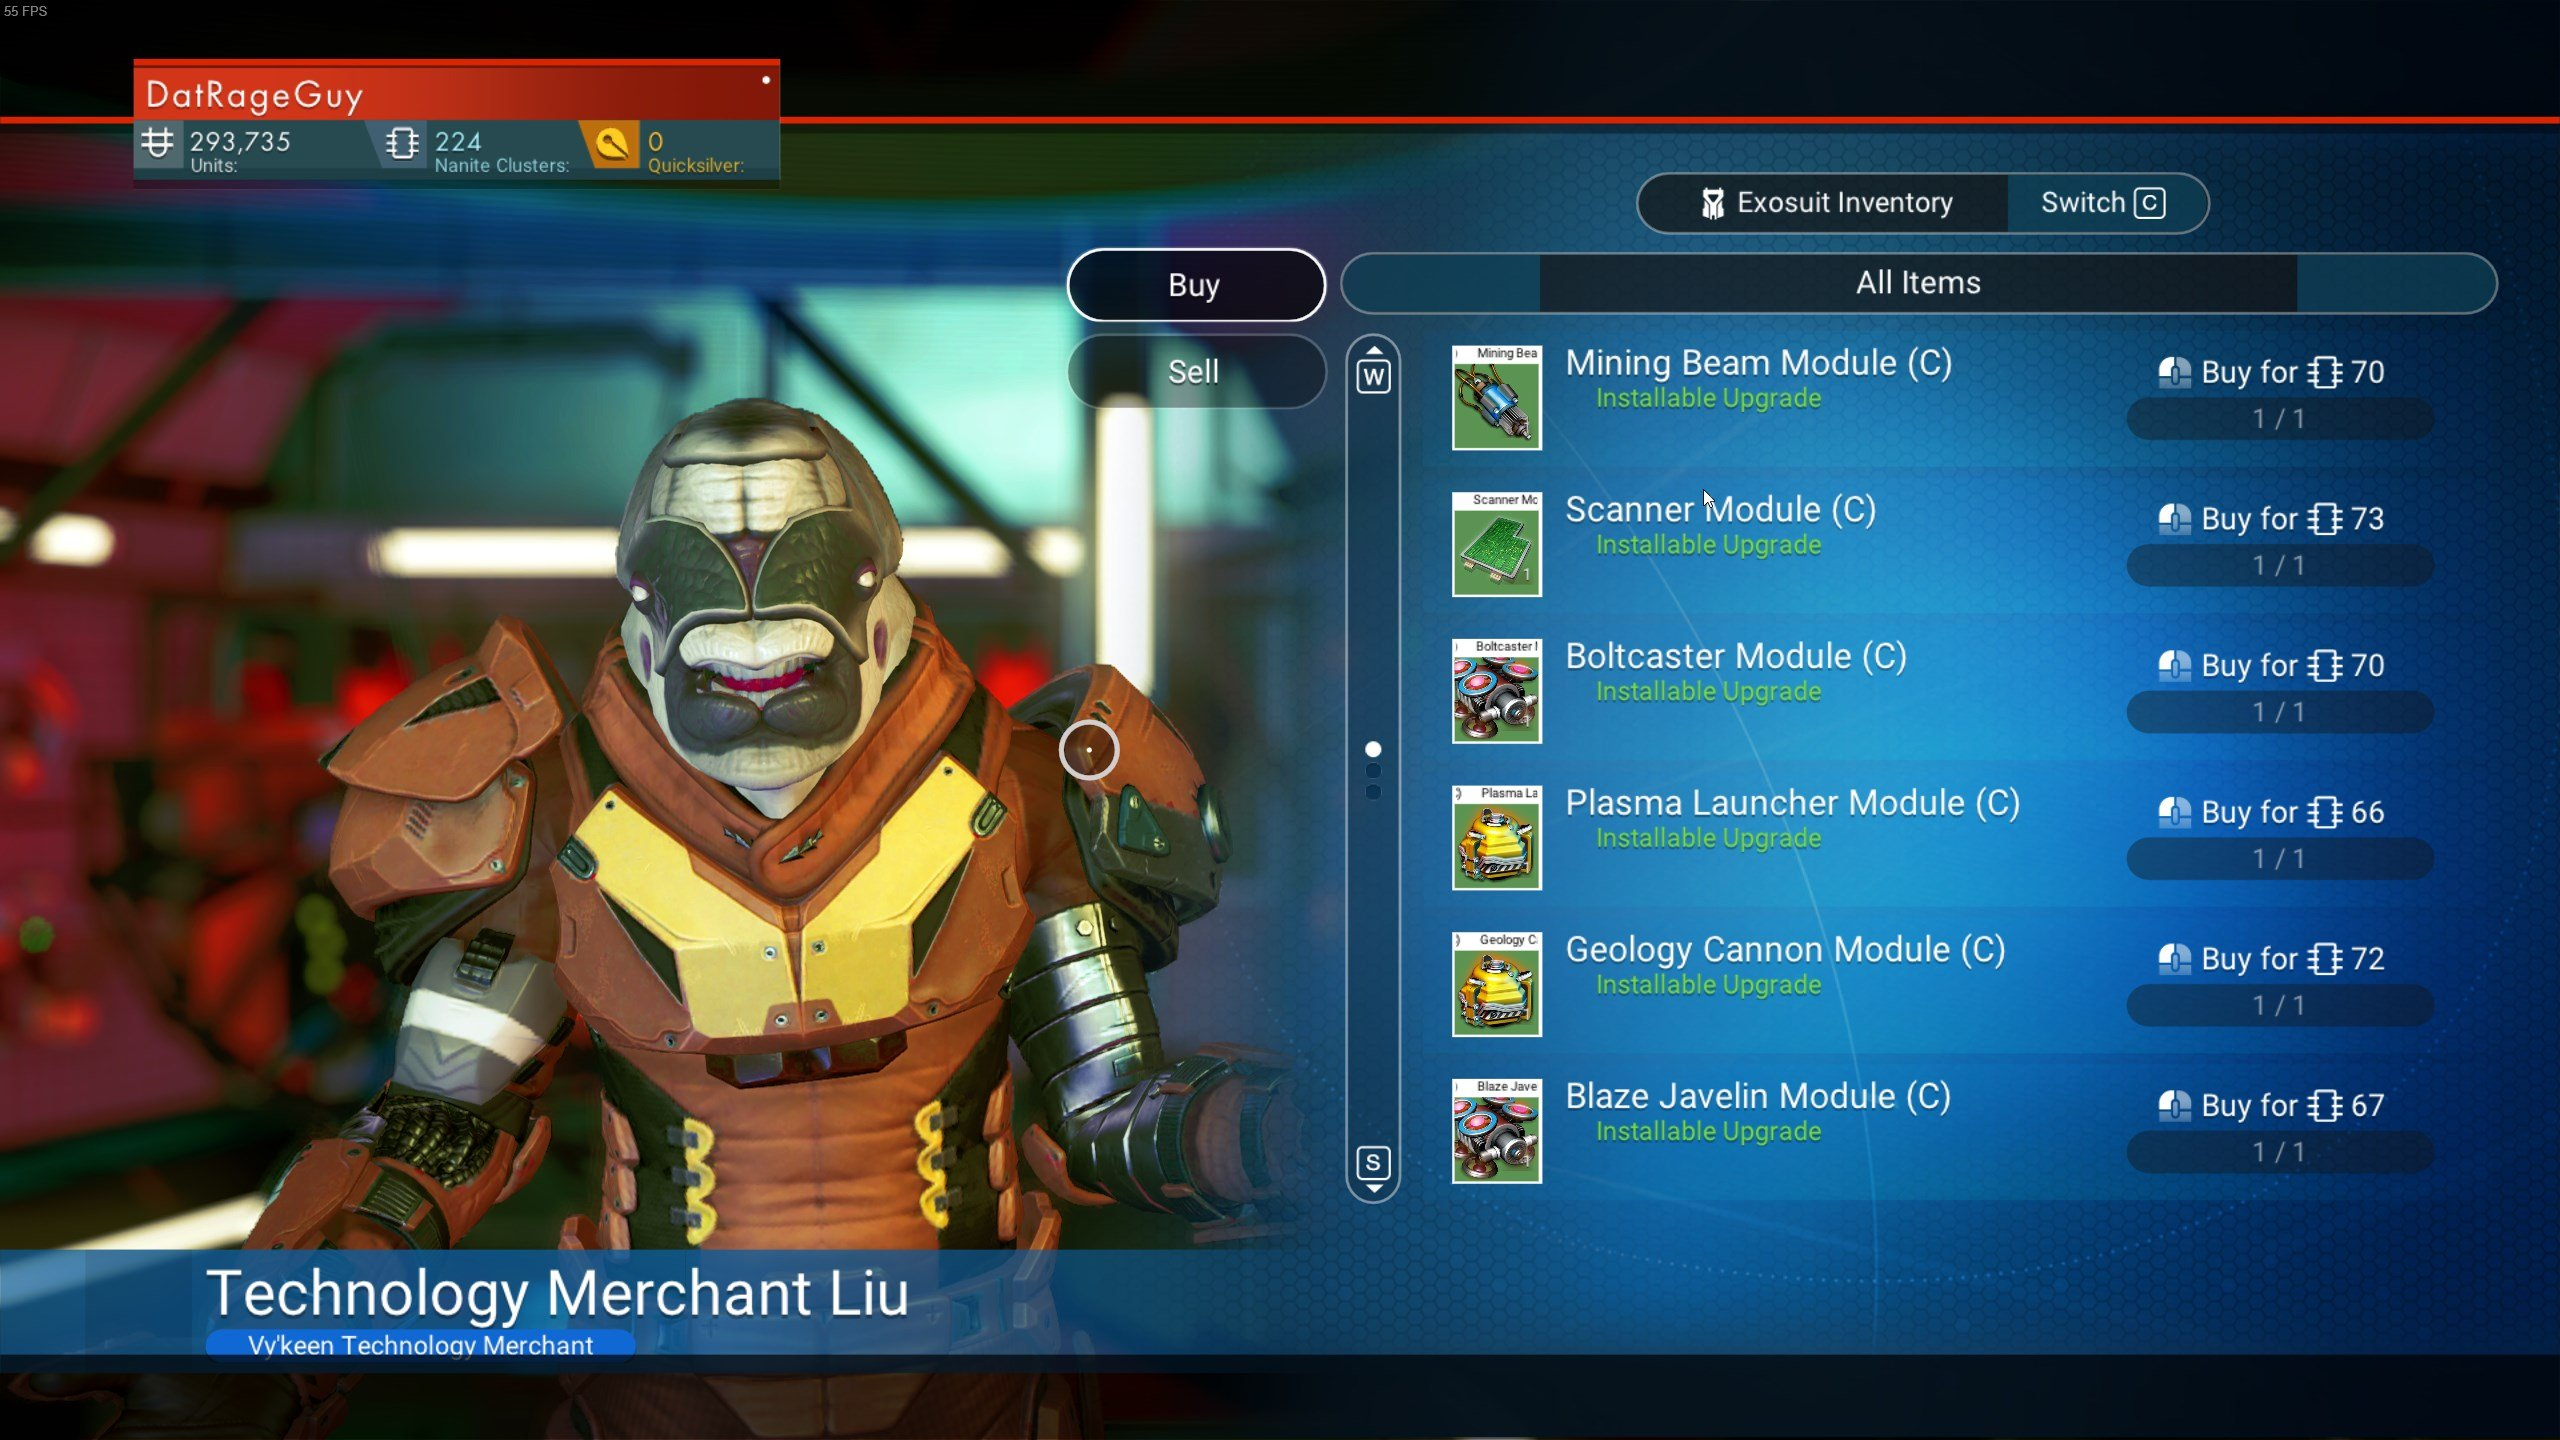 How to get Nanite Clusters in No Man's Sky